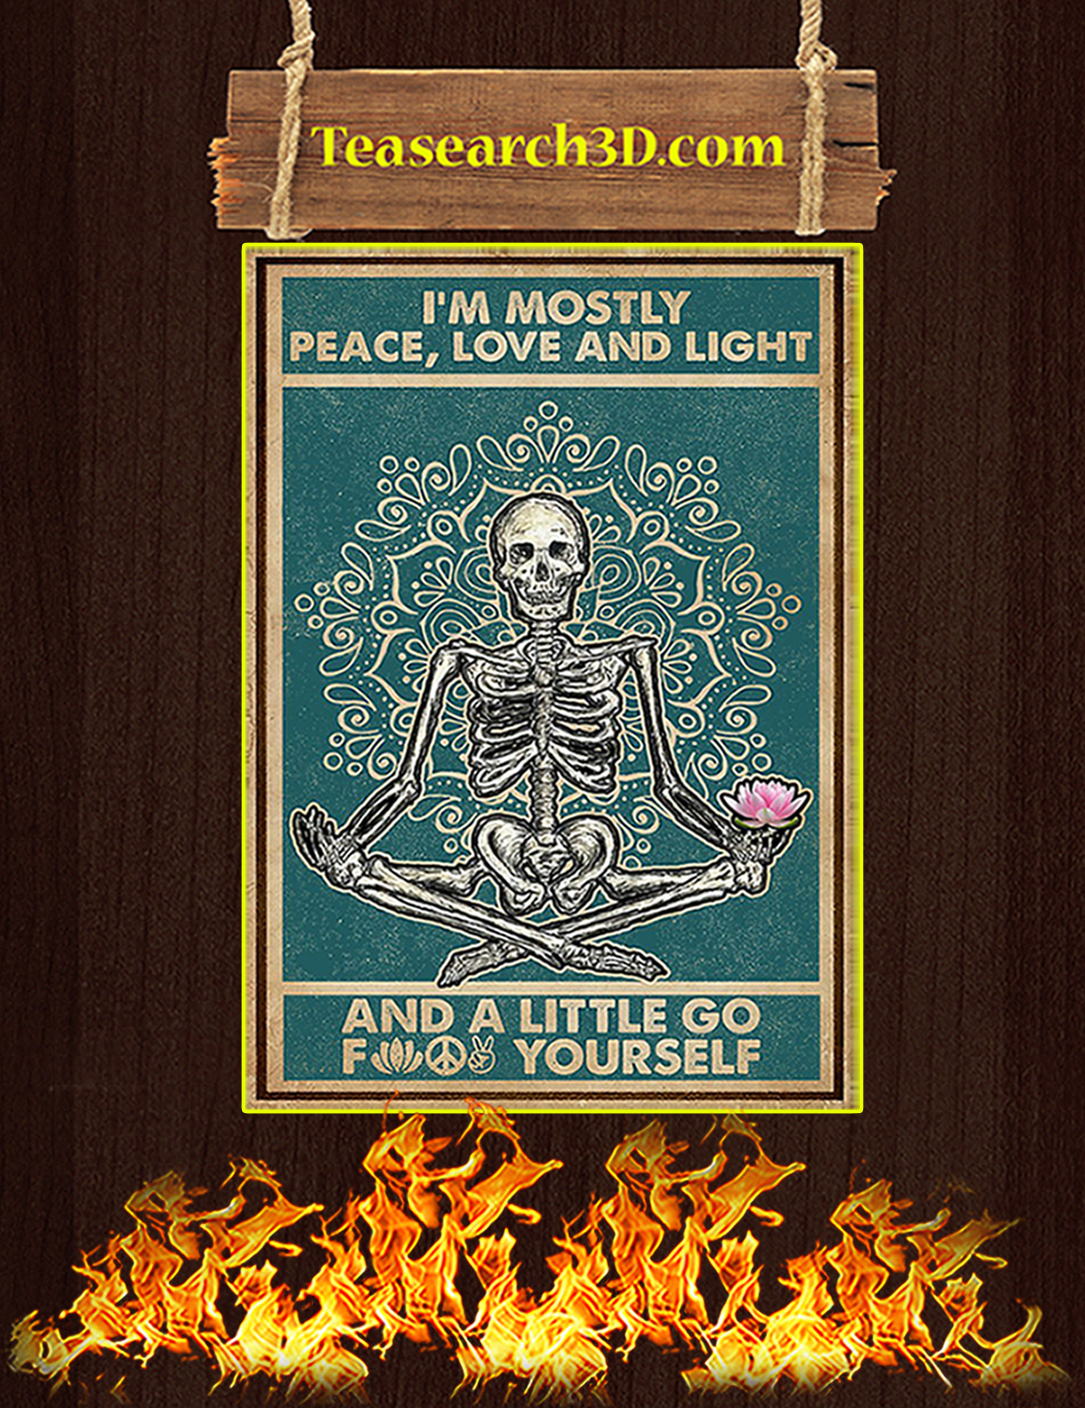 Skeleton yoga I'm mostly peace love and light poster A2